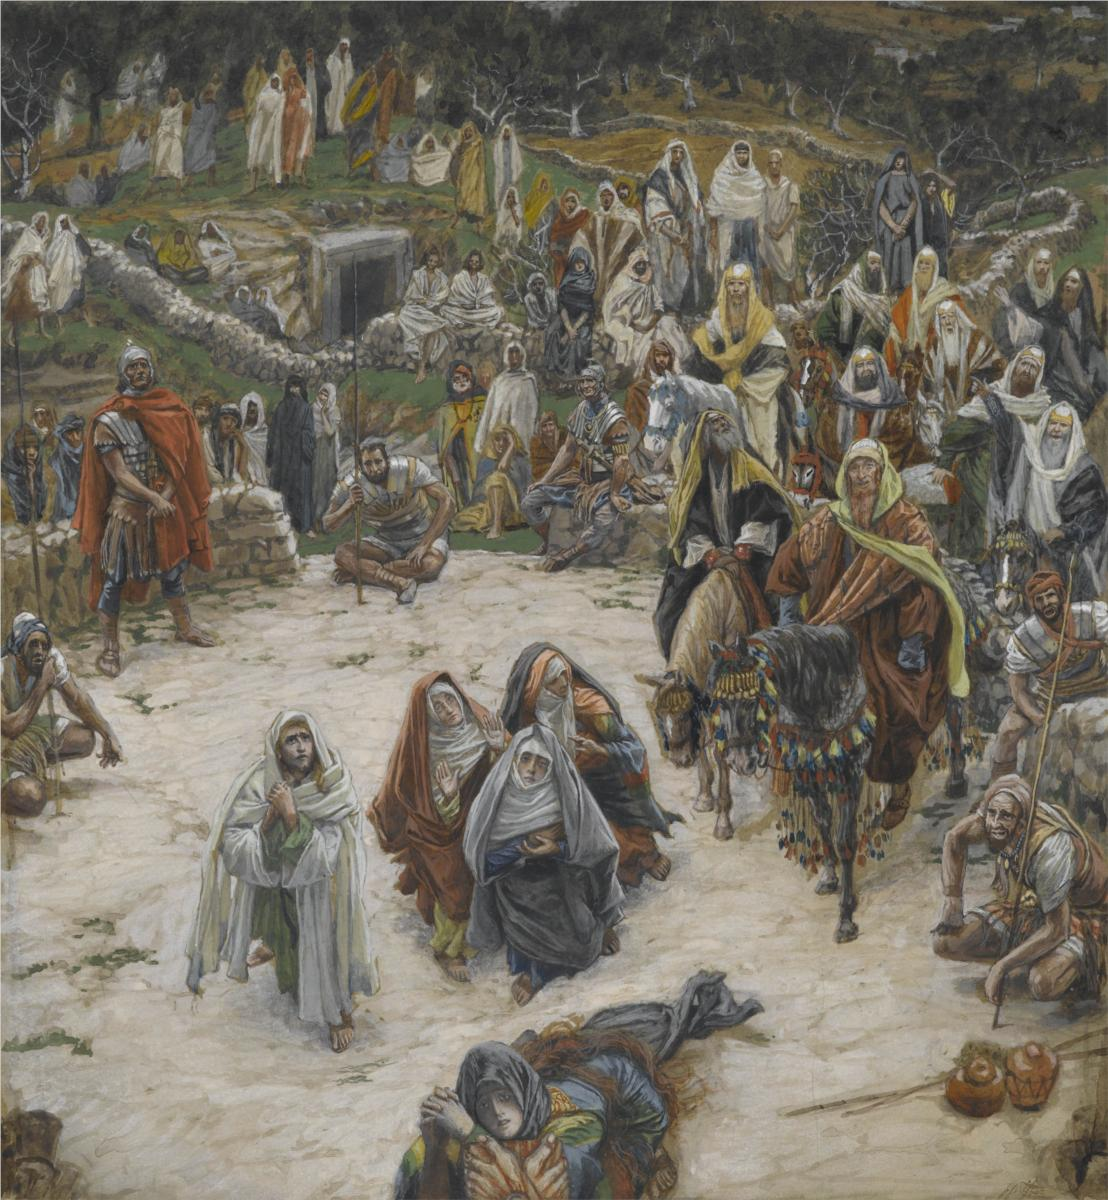 The Crucifixion, Seen From the Execution Stake, by James Tissot